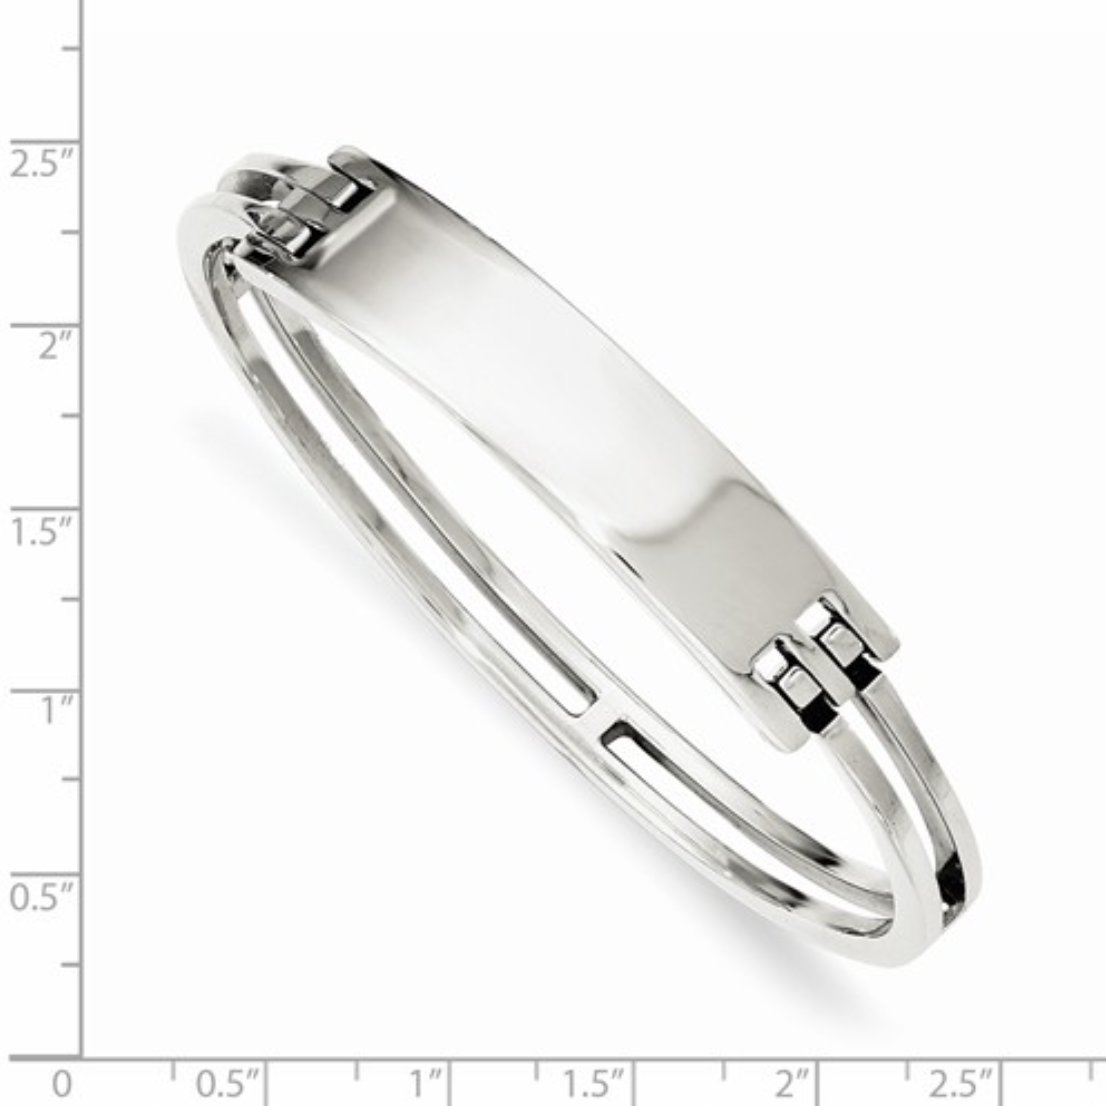 Genuine Sterling Silver Fancy Engravable ID Hinged Bangle Bracelet by Nina's Jewelry Box (Image #2)